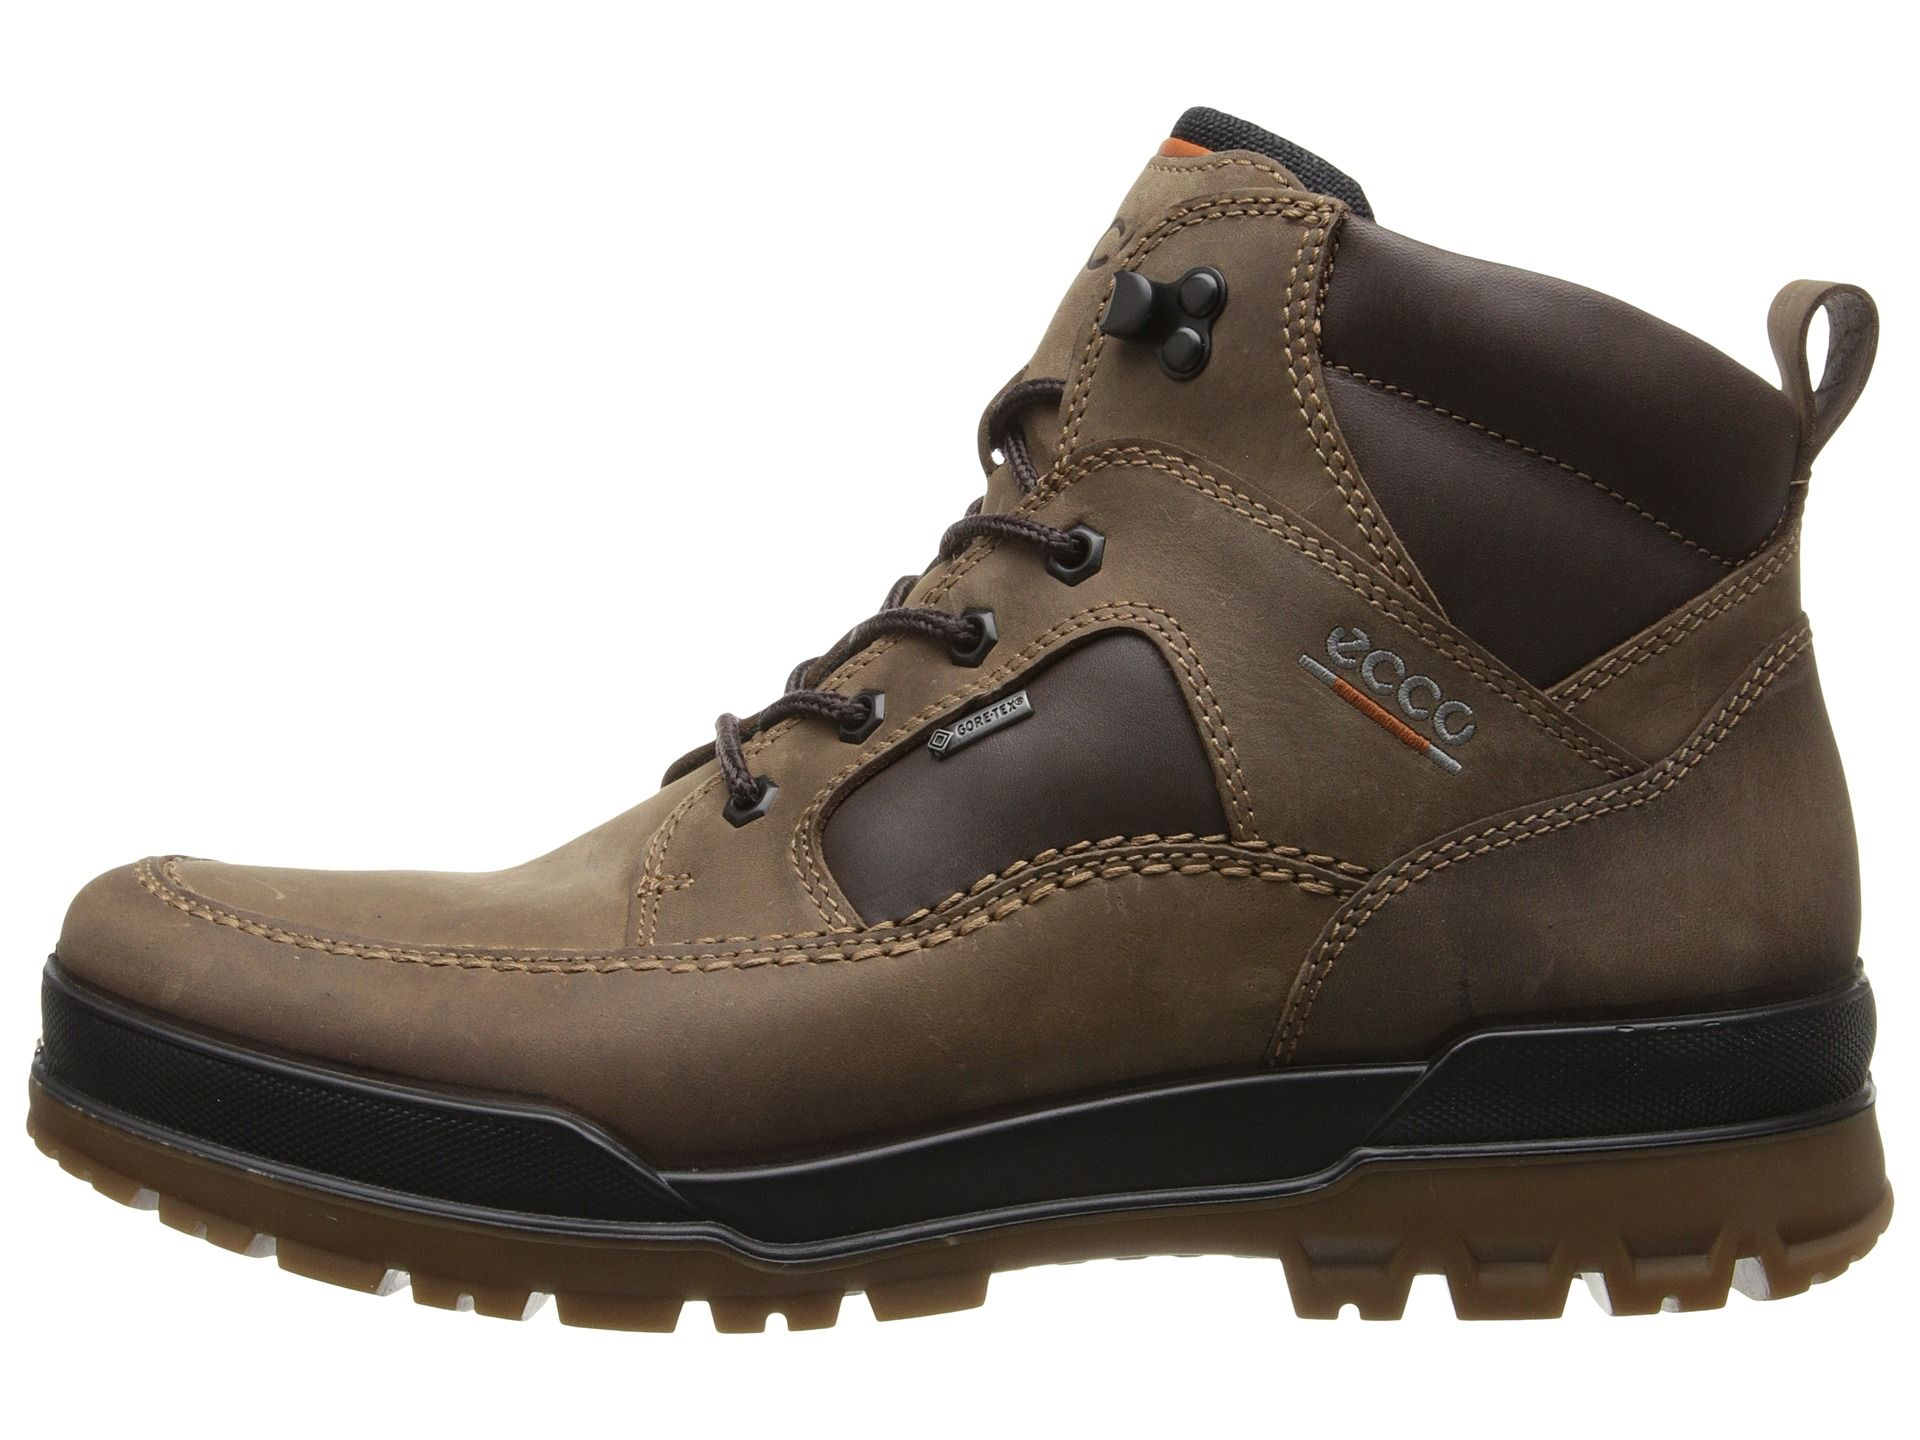 http://www.zappos.com/ecco-track-6- · Men's BootsCoffee ...